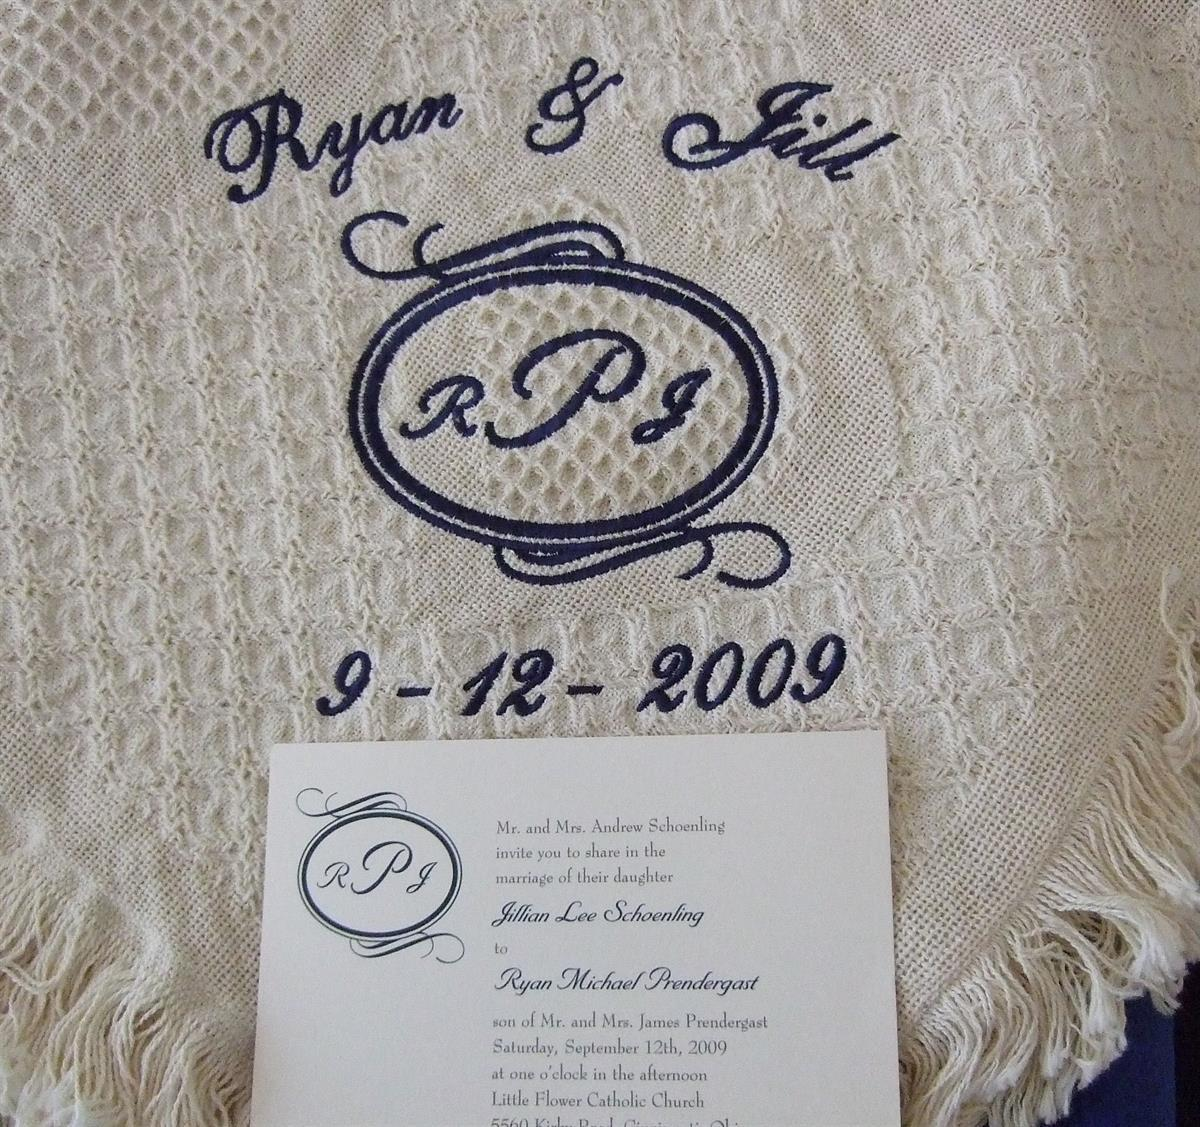 Monogram from wedding invitaion on blanket